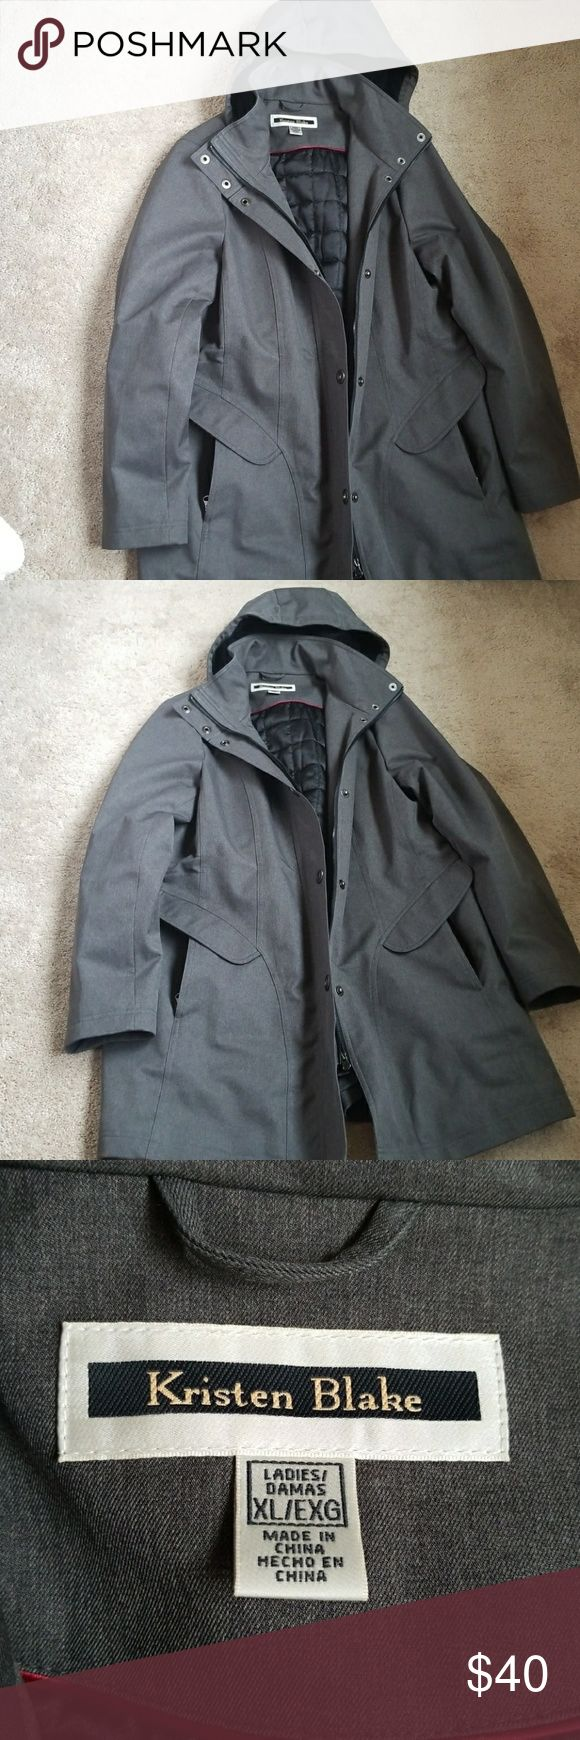 Women's Rain Coat Great rain coat! It has zipper pockets, with zipper and snap closure down the front. The hood is removable and is lined with a soft fabric, also adjustable to tighten around the face. The coat is adjustable around the waist. Excellent condition. Kristen Blake Jackets & Coats Trench Coats